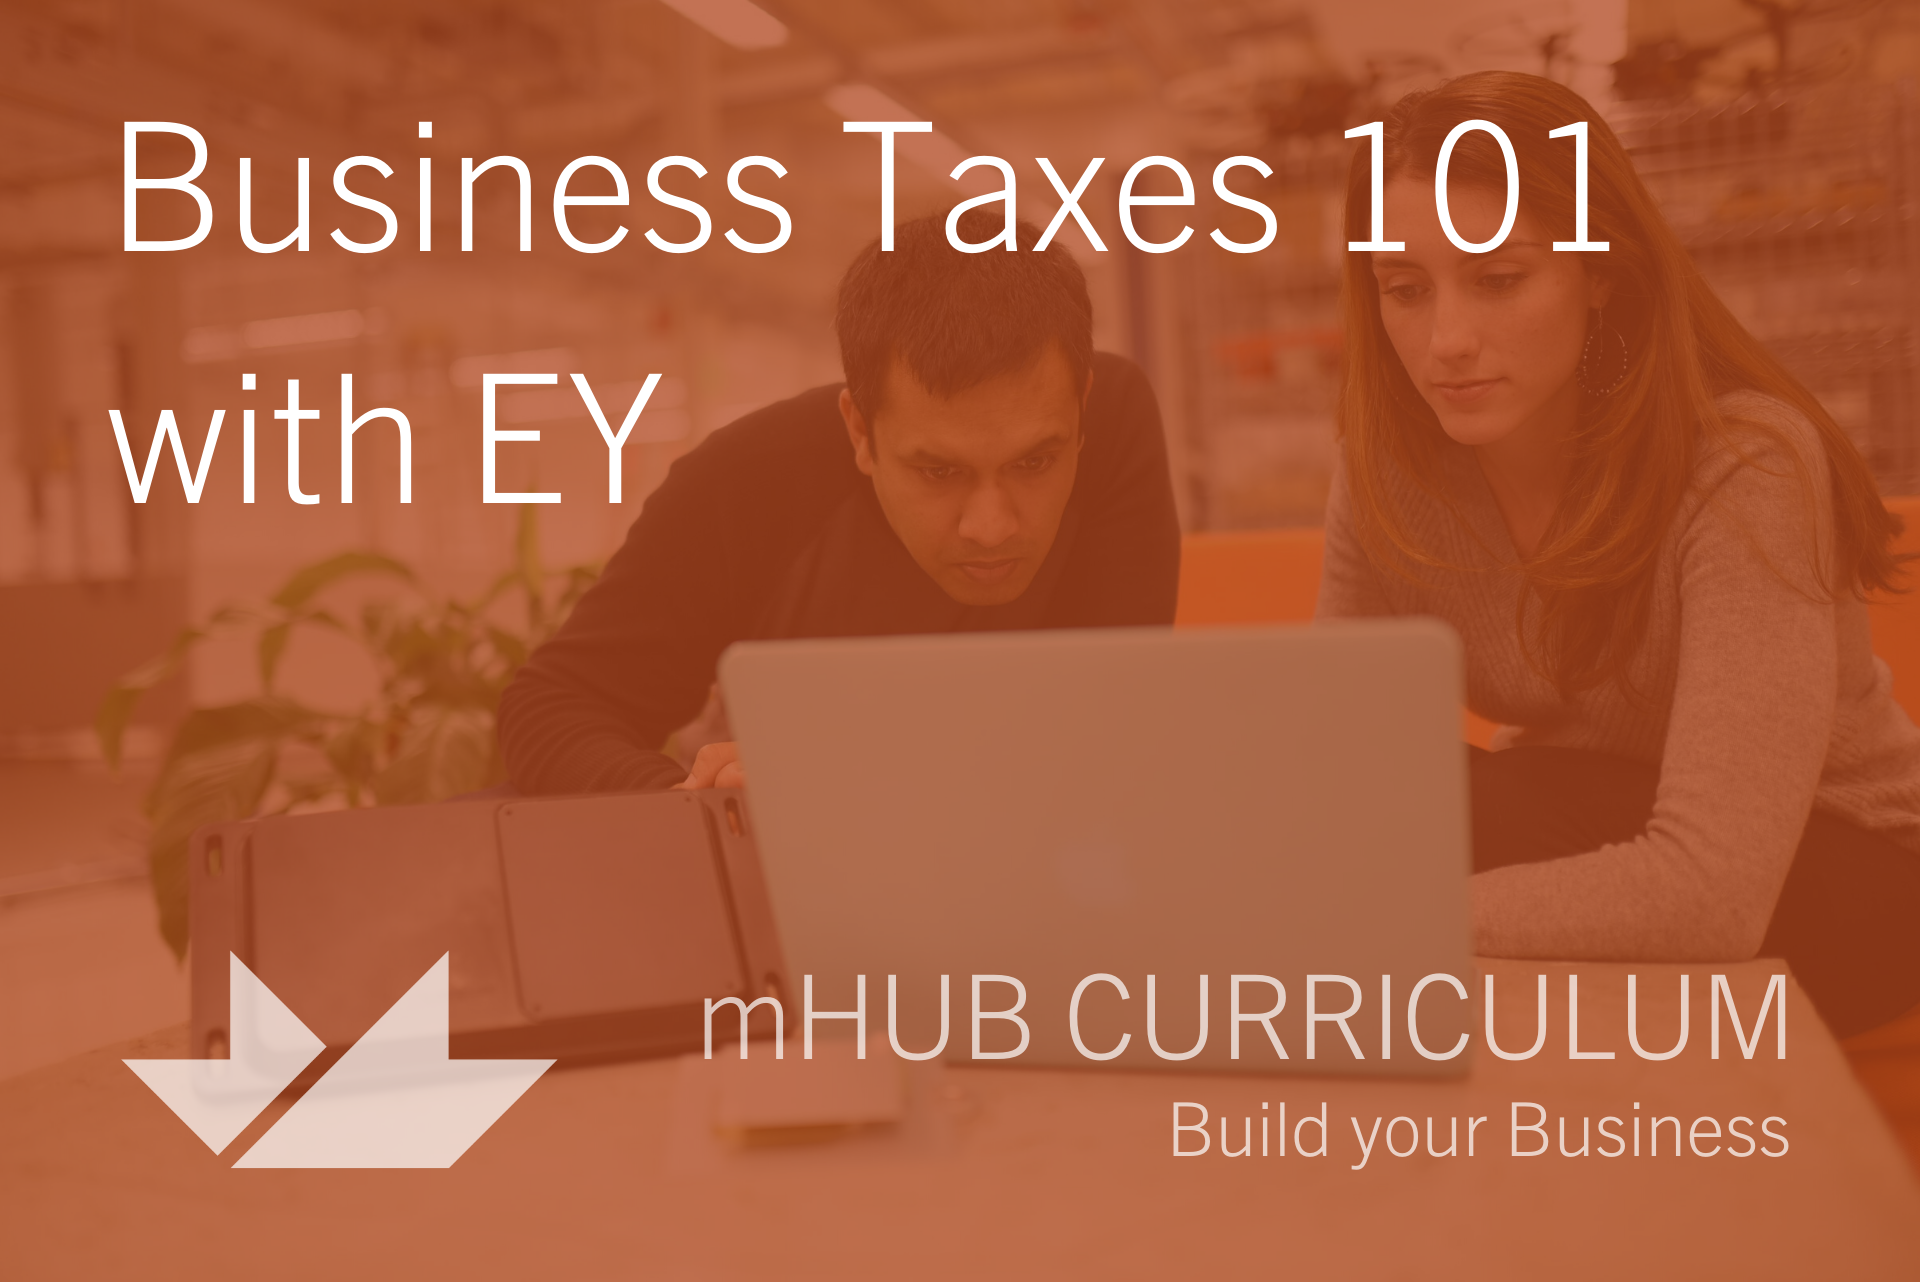 Filing Your Business Taxes This Year